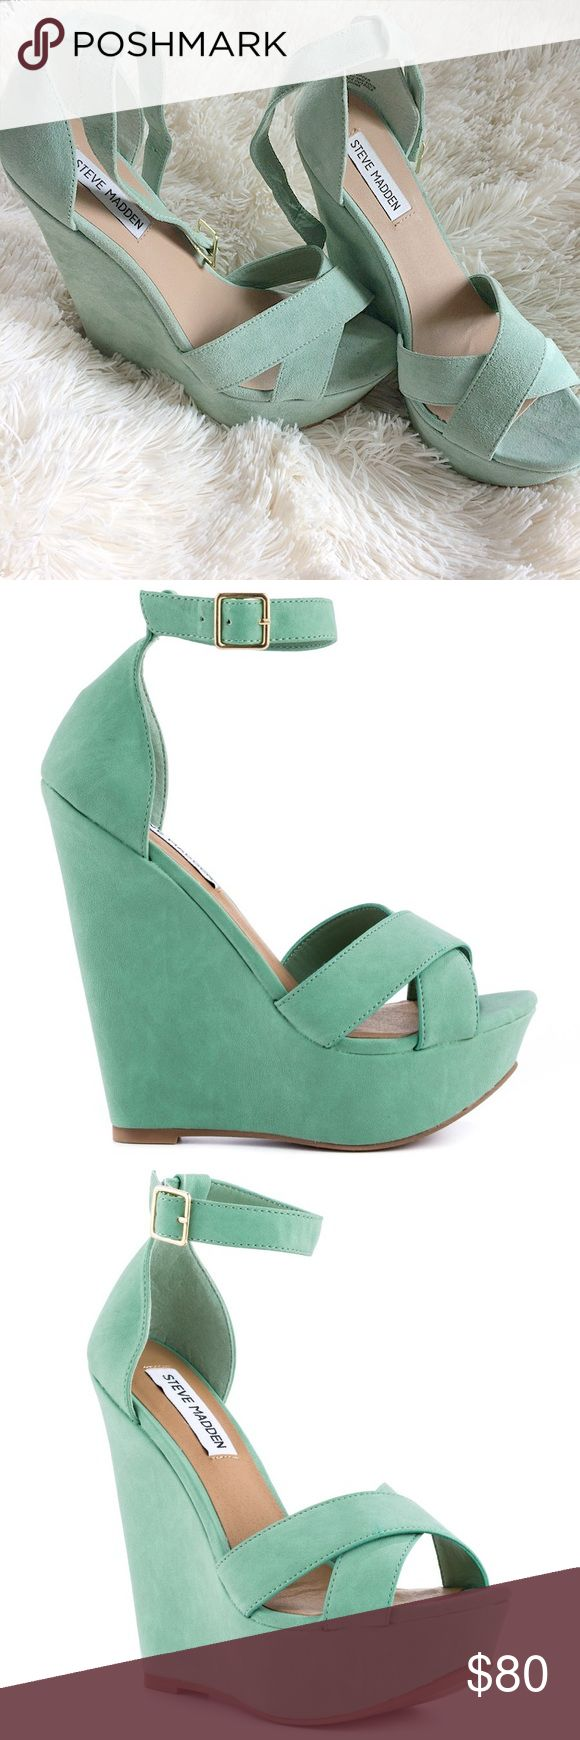 Steve Madden Xenon Mint Wedges Got these a consignment shop and sadly they are too big for me. The look like they've been worn a few times. There might be some barely noticeable dusty spots, and the straps are only slightly worn. Steve Madden Shoes Wedges